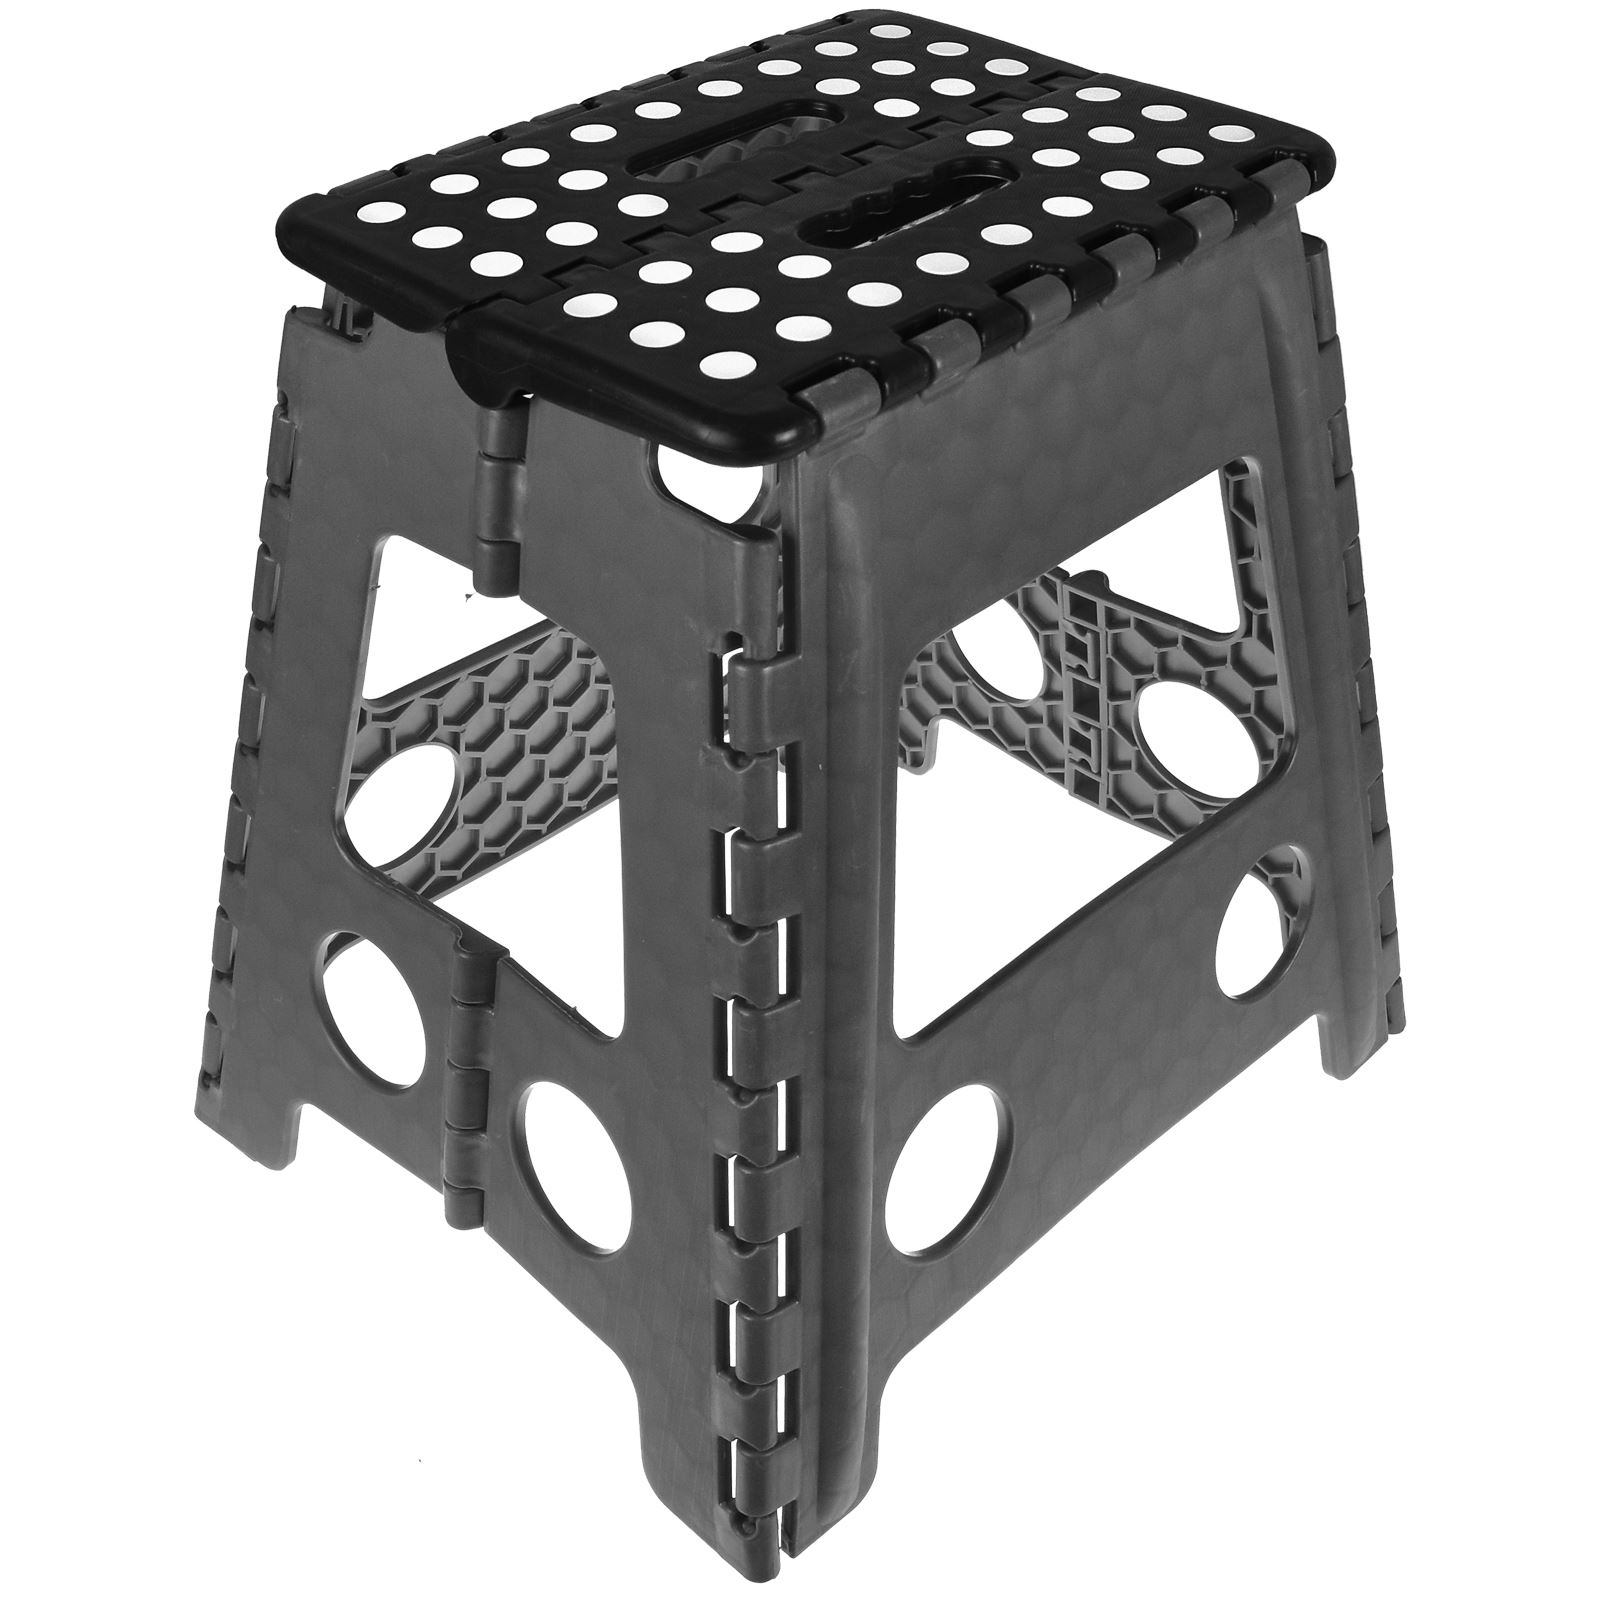 Large-Fold-Step-Stool-Plastic-Home-Kitchen-Multi-  sc 1 st  eBay & Large Fold Step Stool Plastic Home Kitchen Multi Purpose Foldable ... islam-shia.org